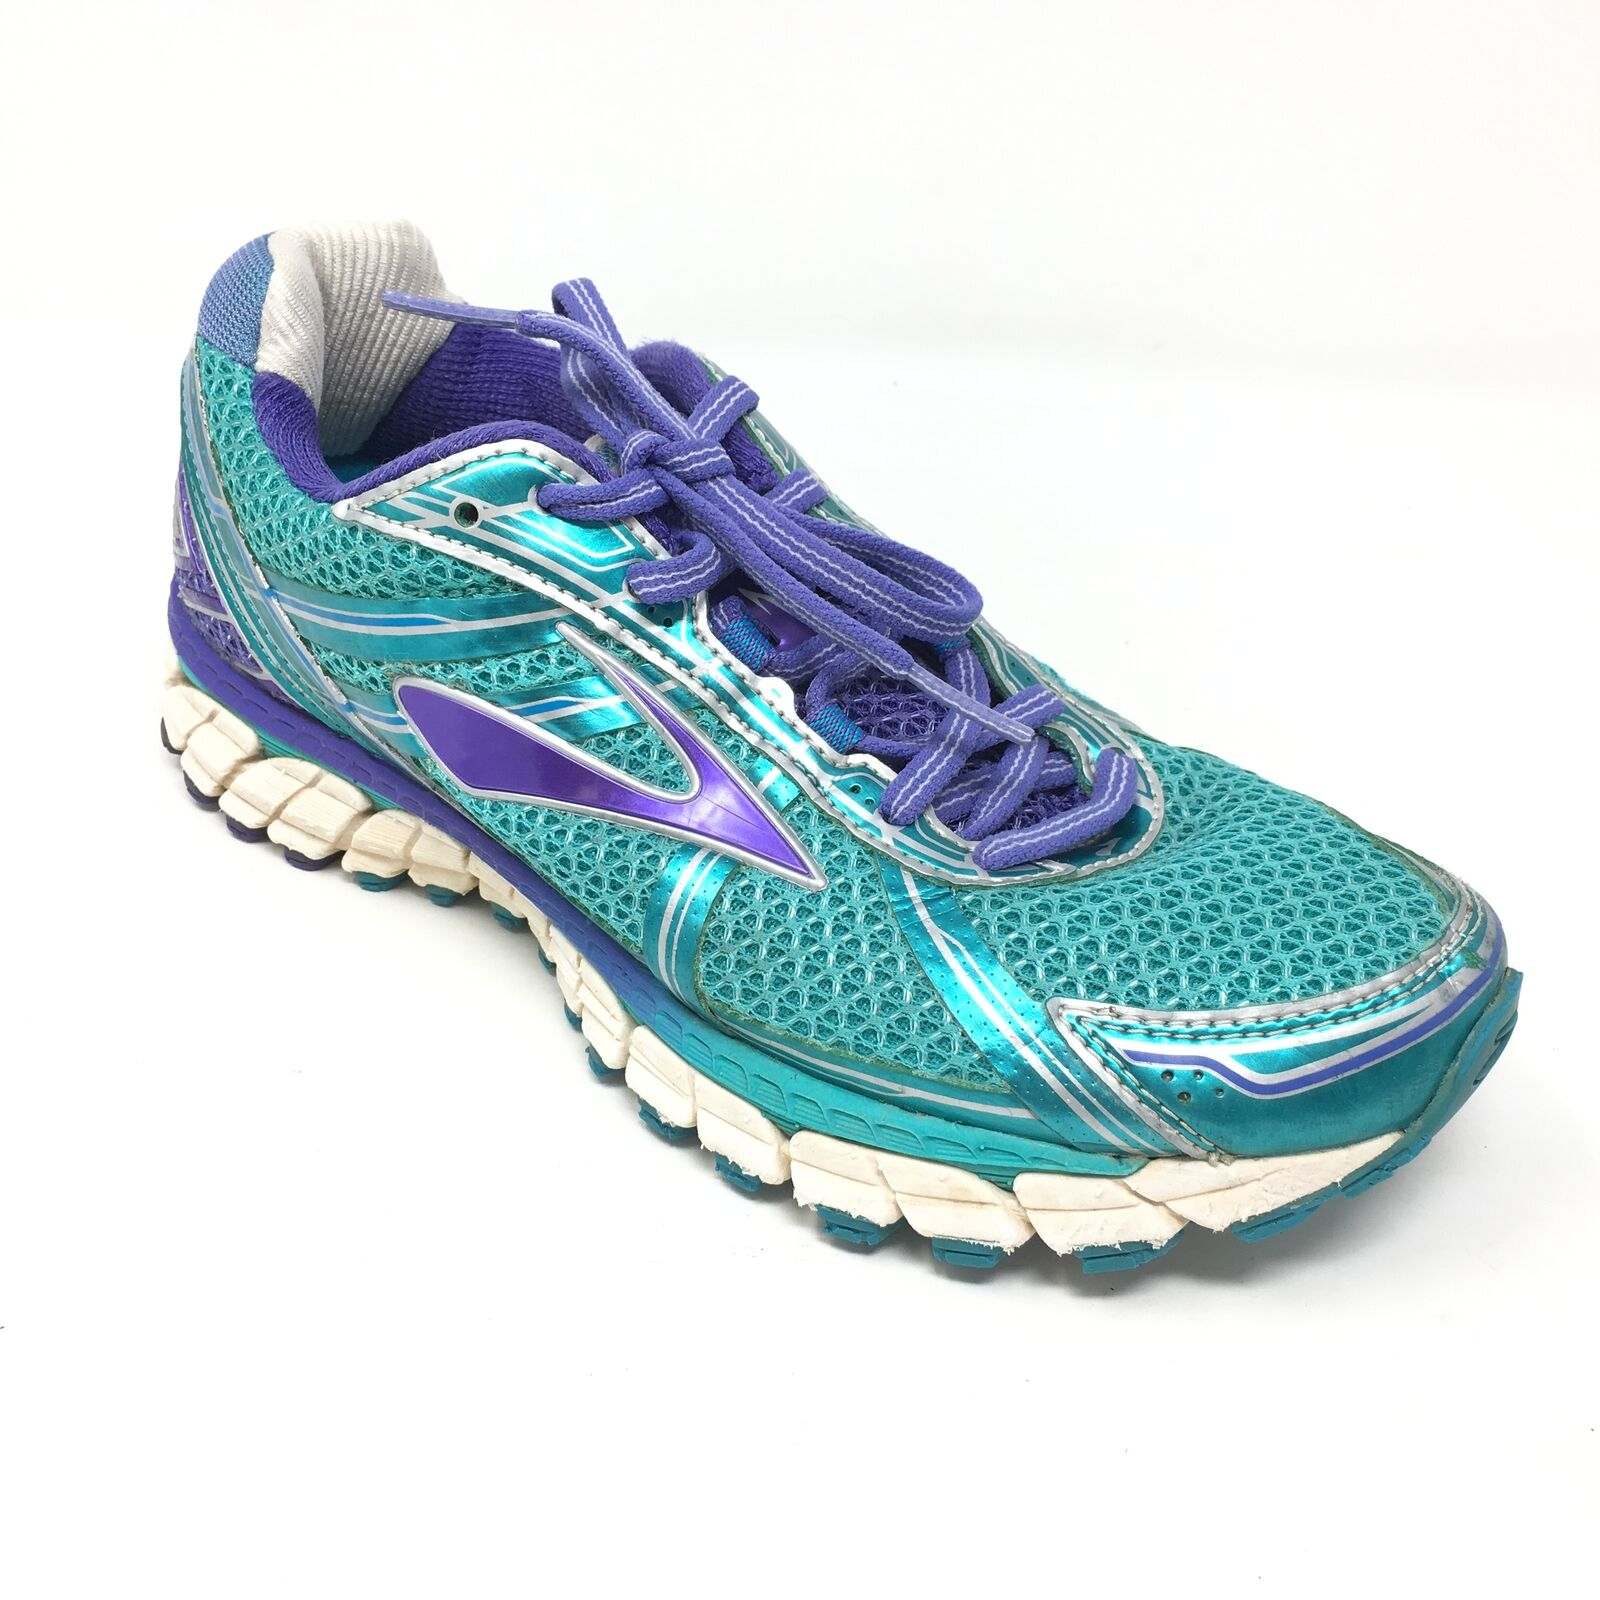 Women's Brooks GTS-15 shoes Sneakers Size 7B Running Teal Purple White AE14